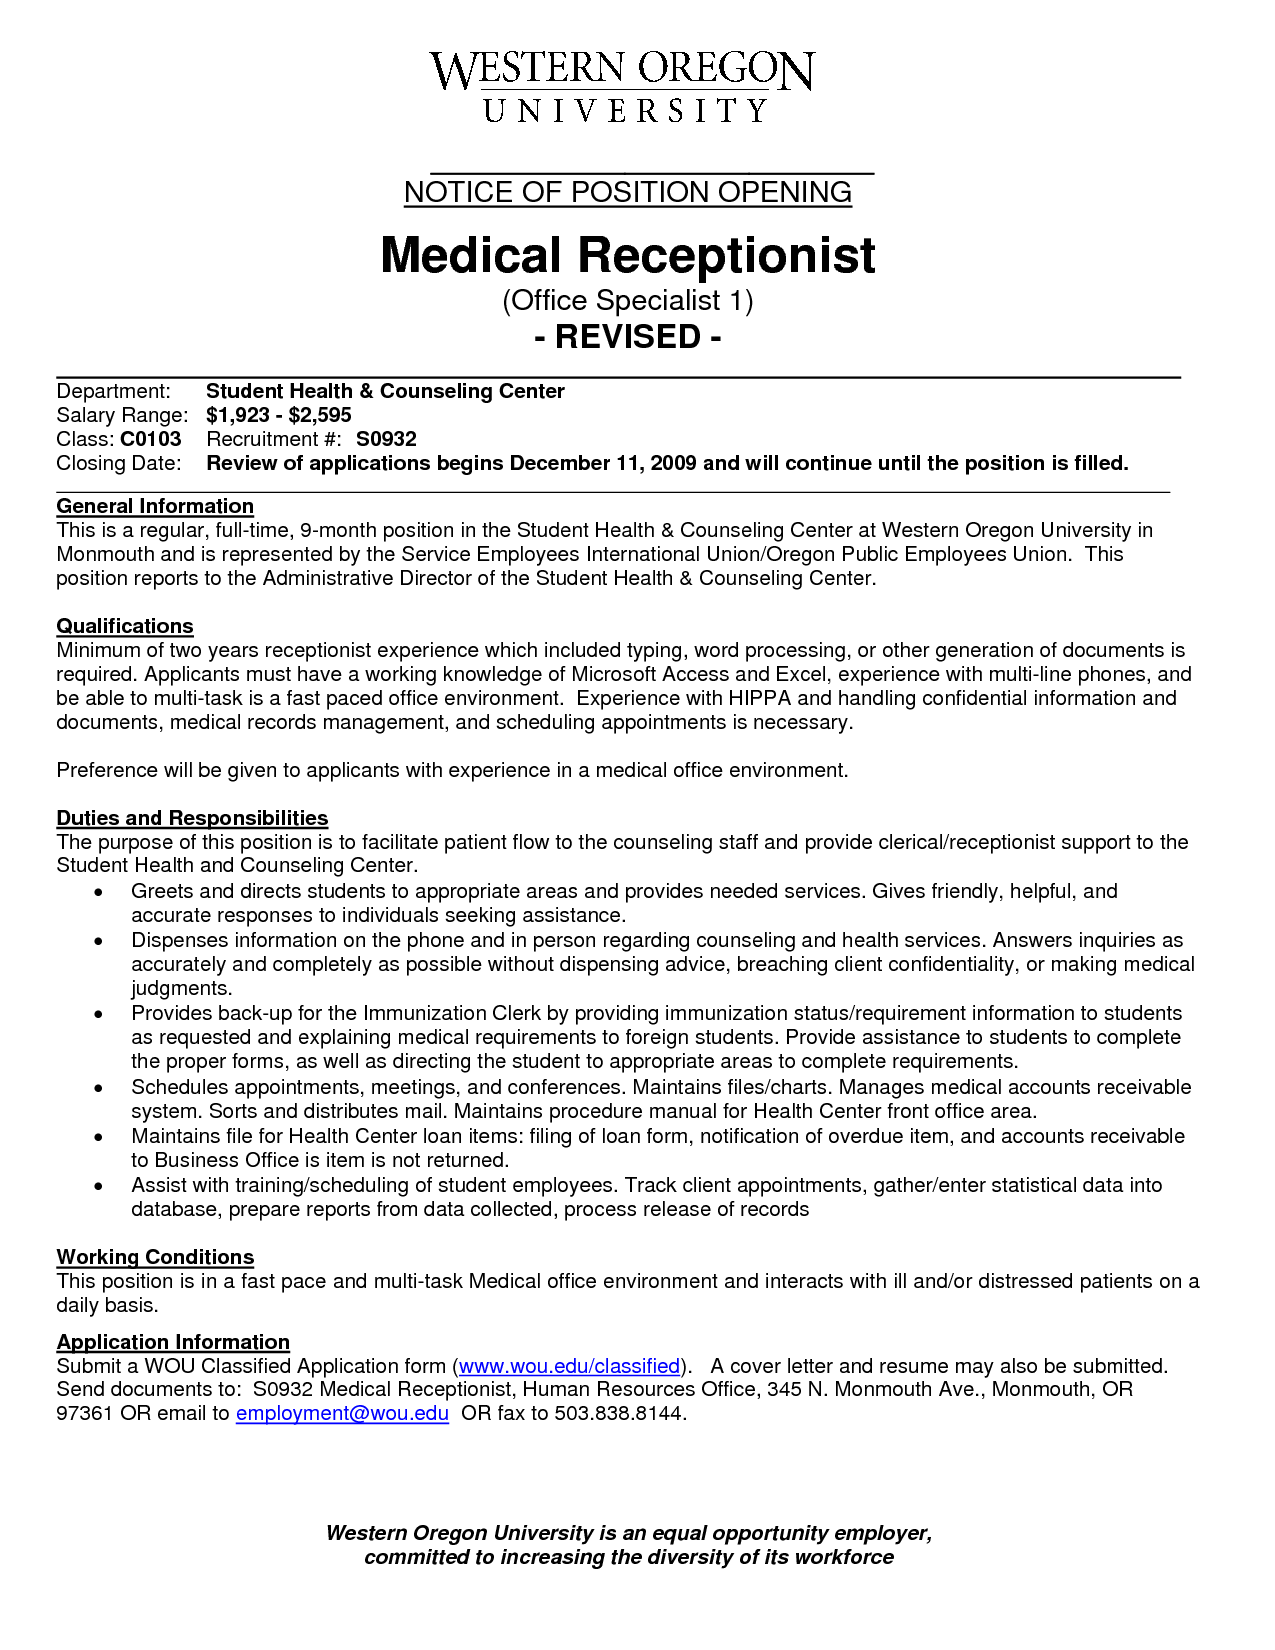 Doctor Resume Template Medical Receptionist Resume With No Experience  Httpwww